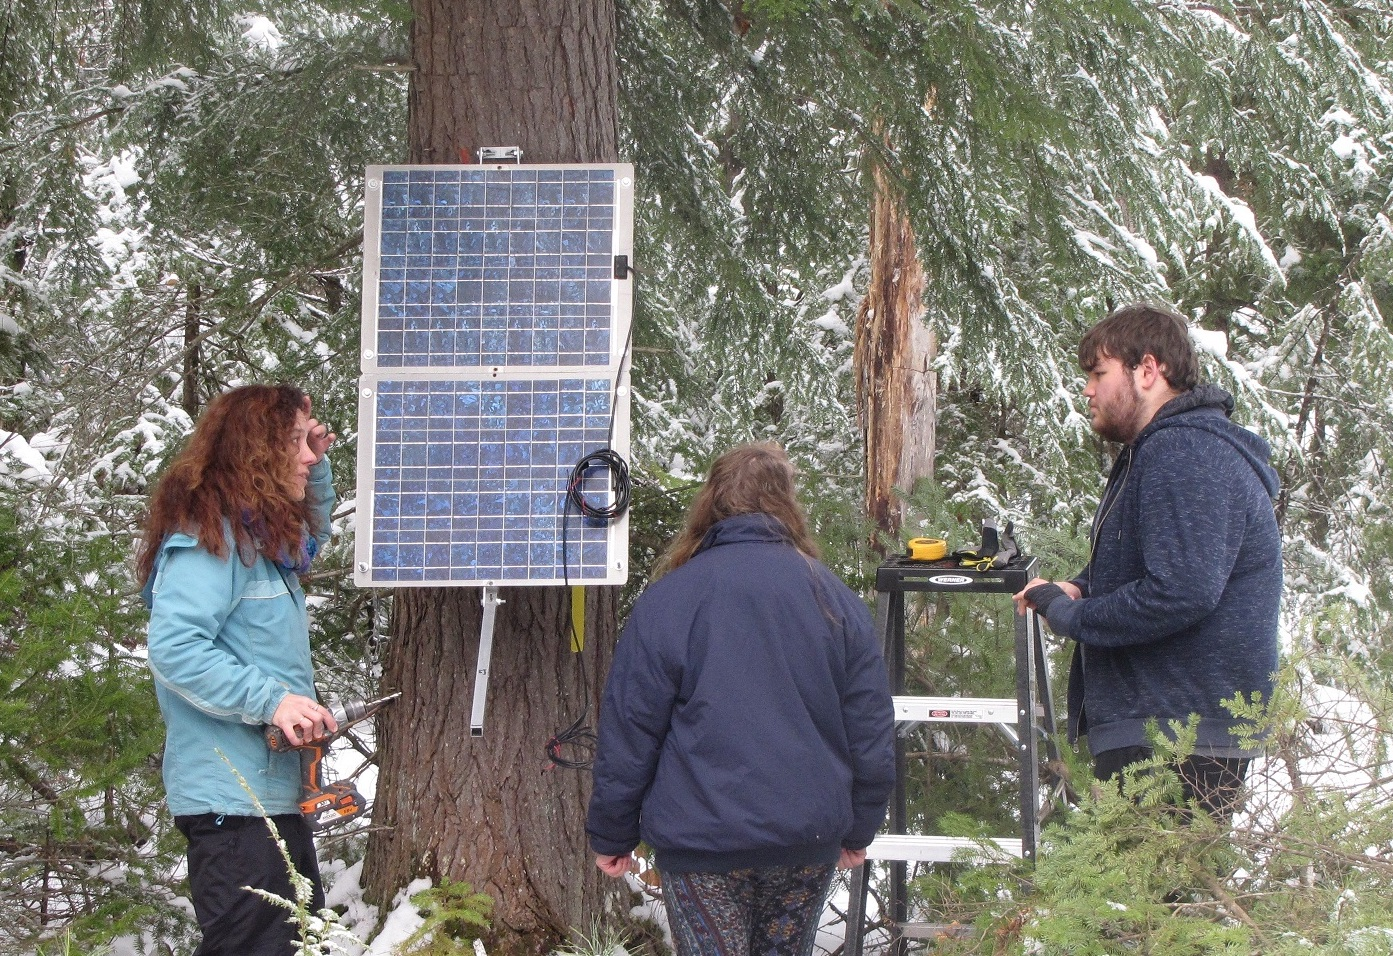 Apryl Perry, Amanda, and Jacob discuss solar panel angle